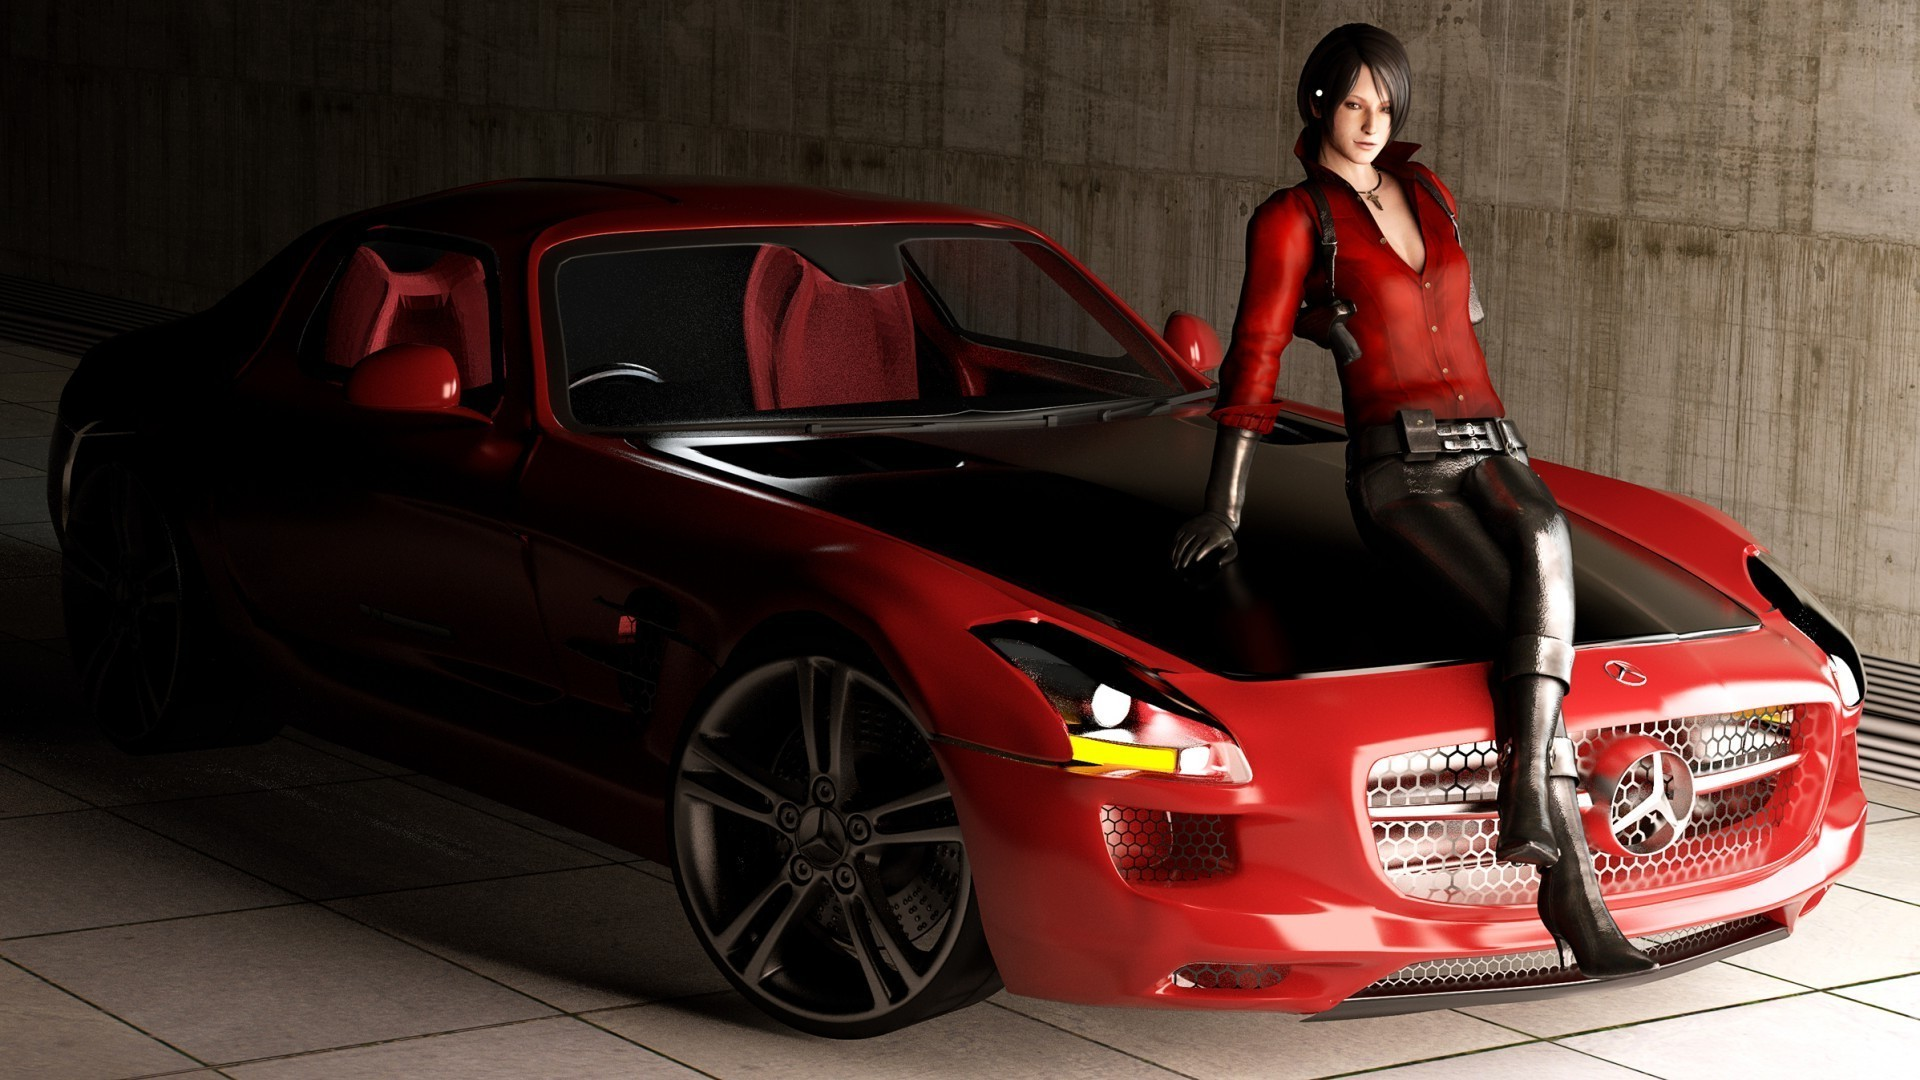 Mercedes Sports Cars Wallpapers The Girl In The Red Mercedes Benz Android Wallpapers For